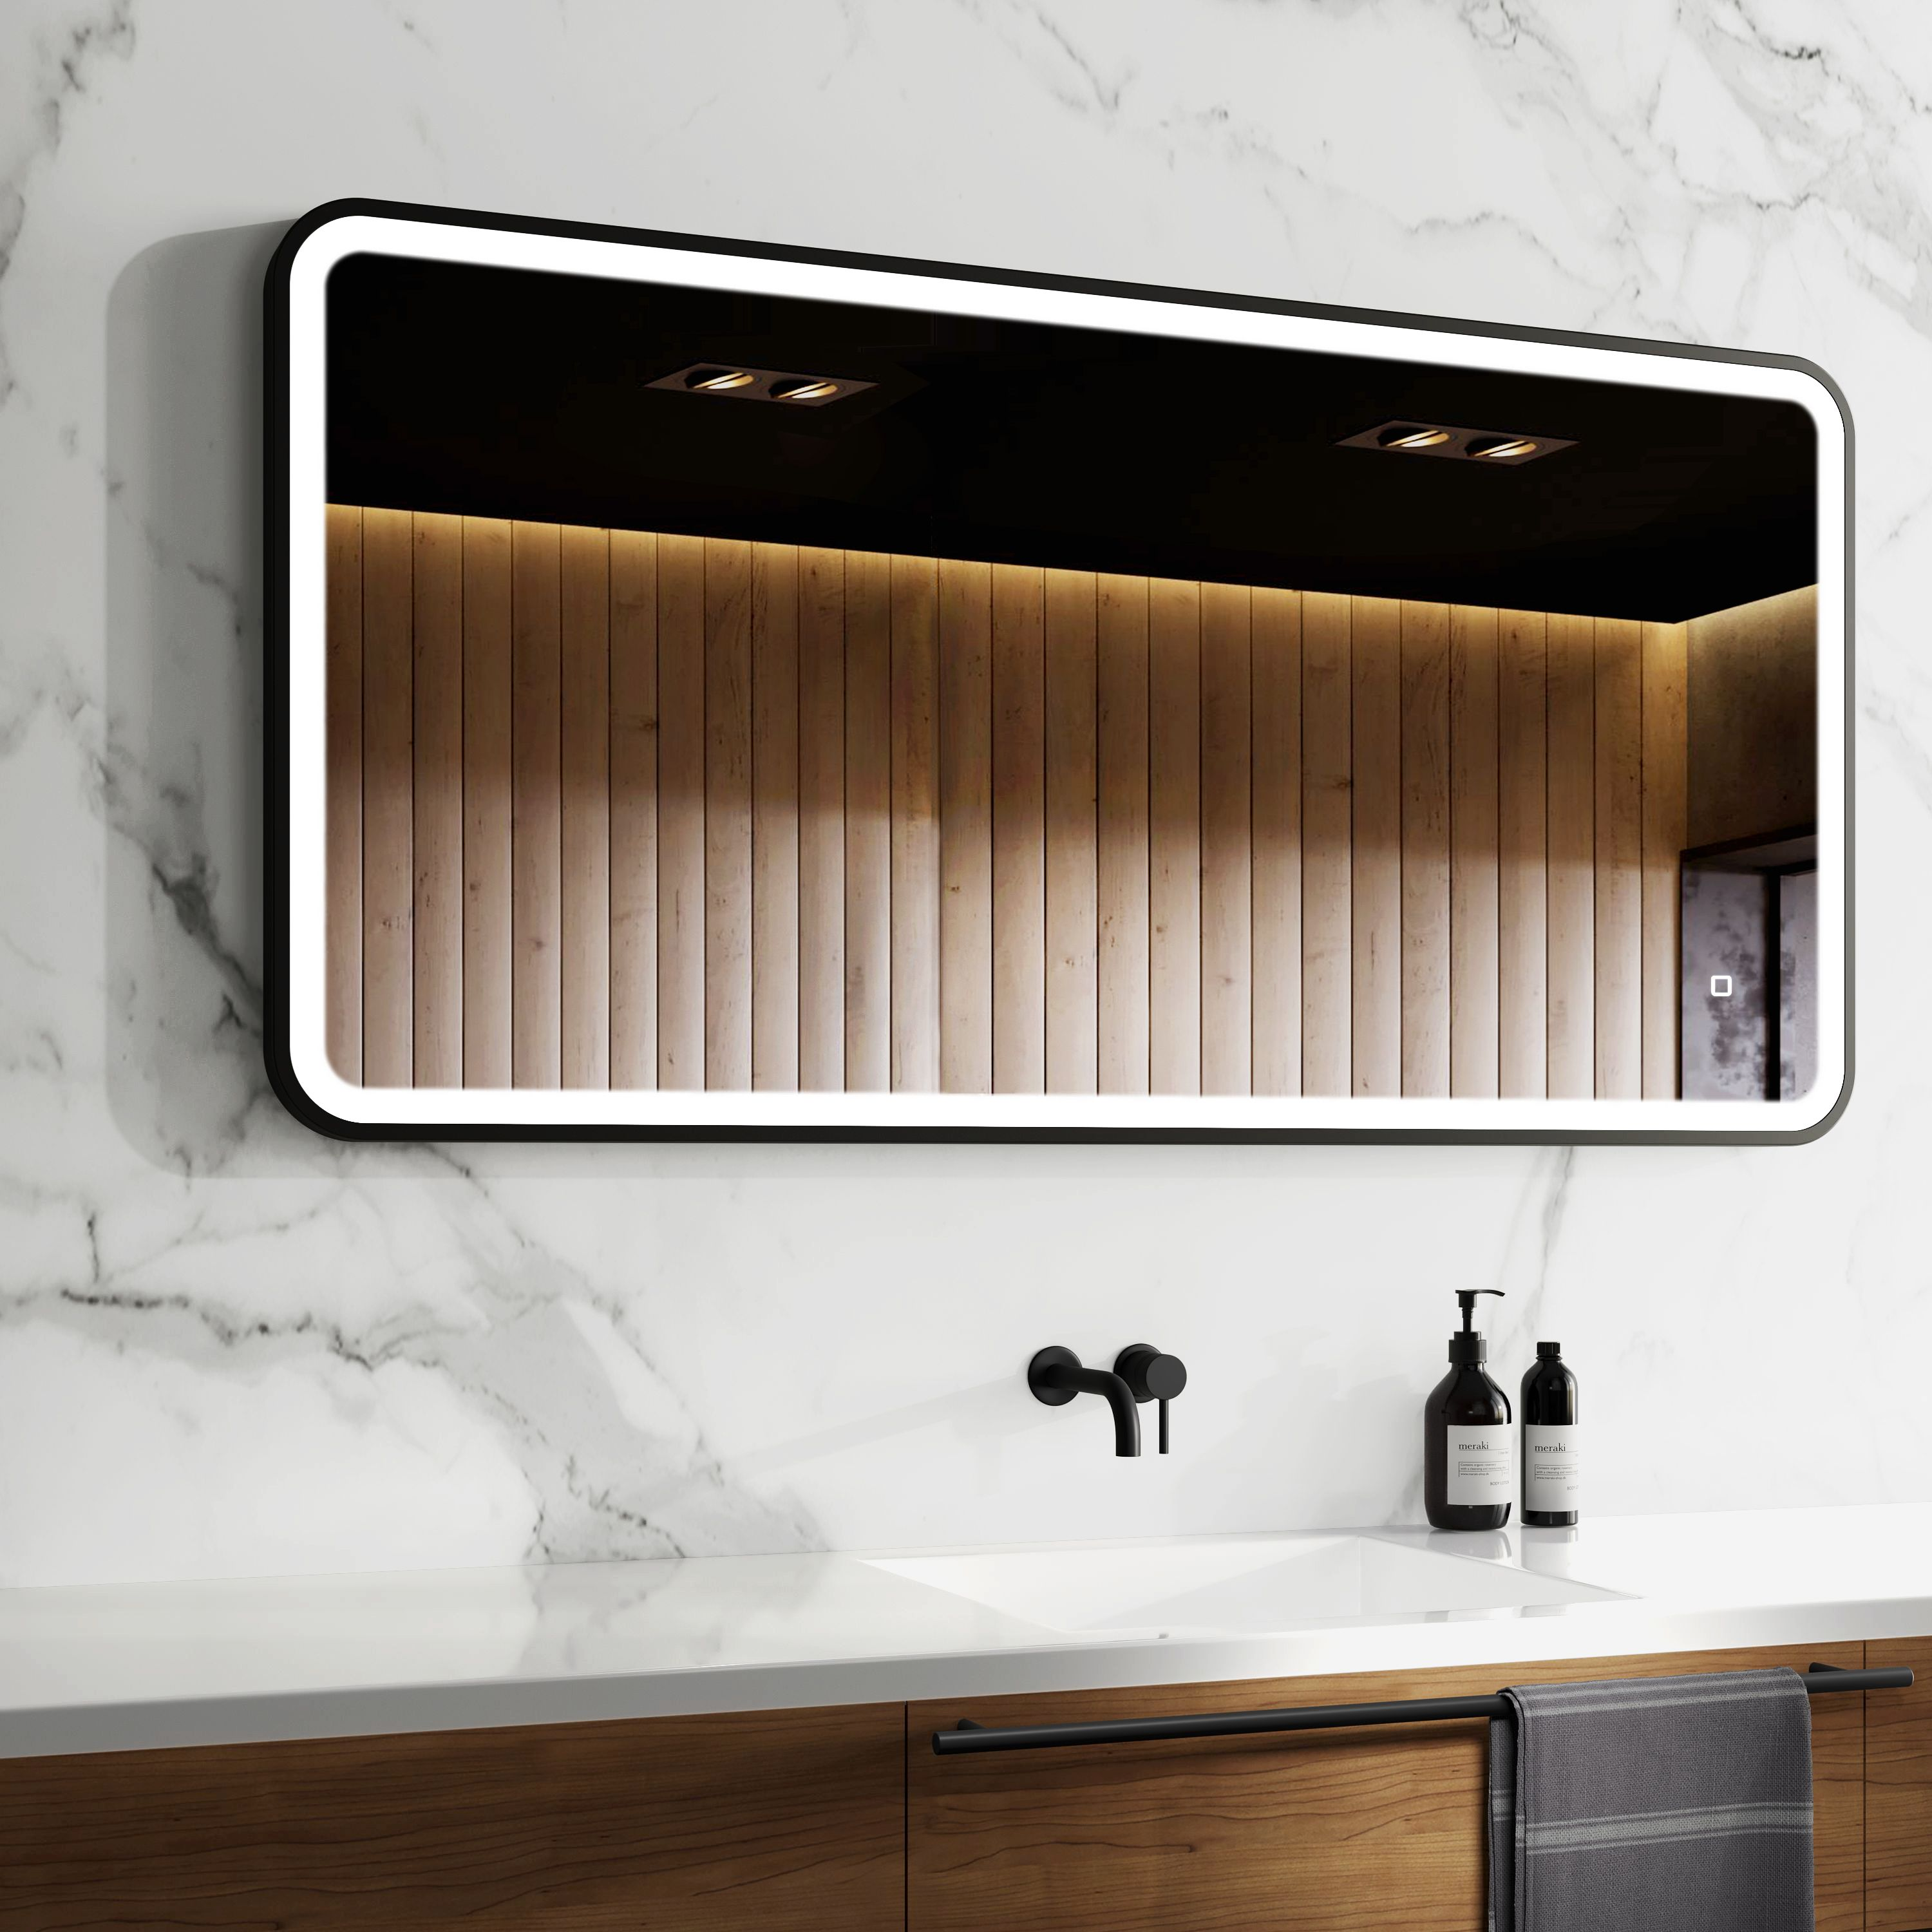 Arabella Black Framed Illuminated Led Mirror 600x1200mm In 2020 Led Mirror Mirror Cabinets Stylish Bathroom